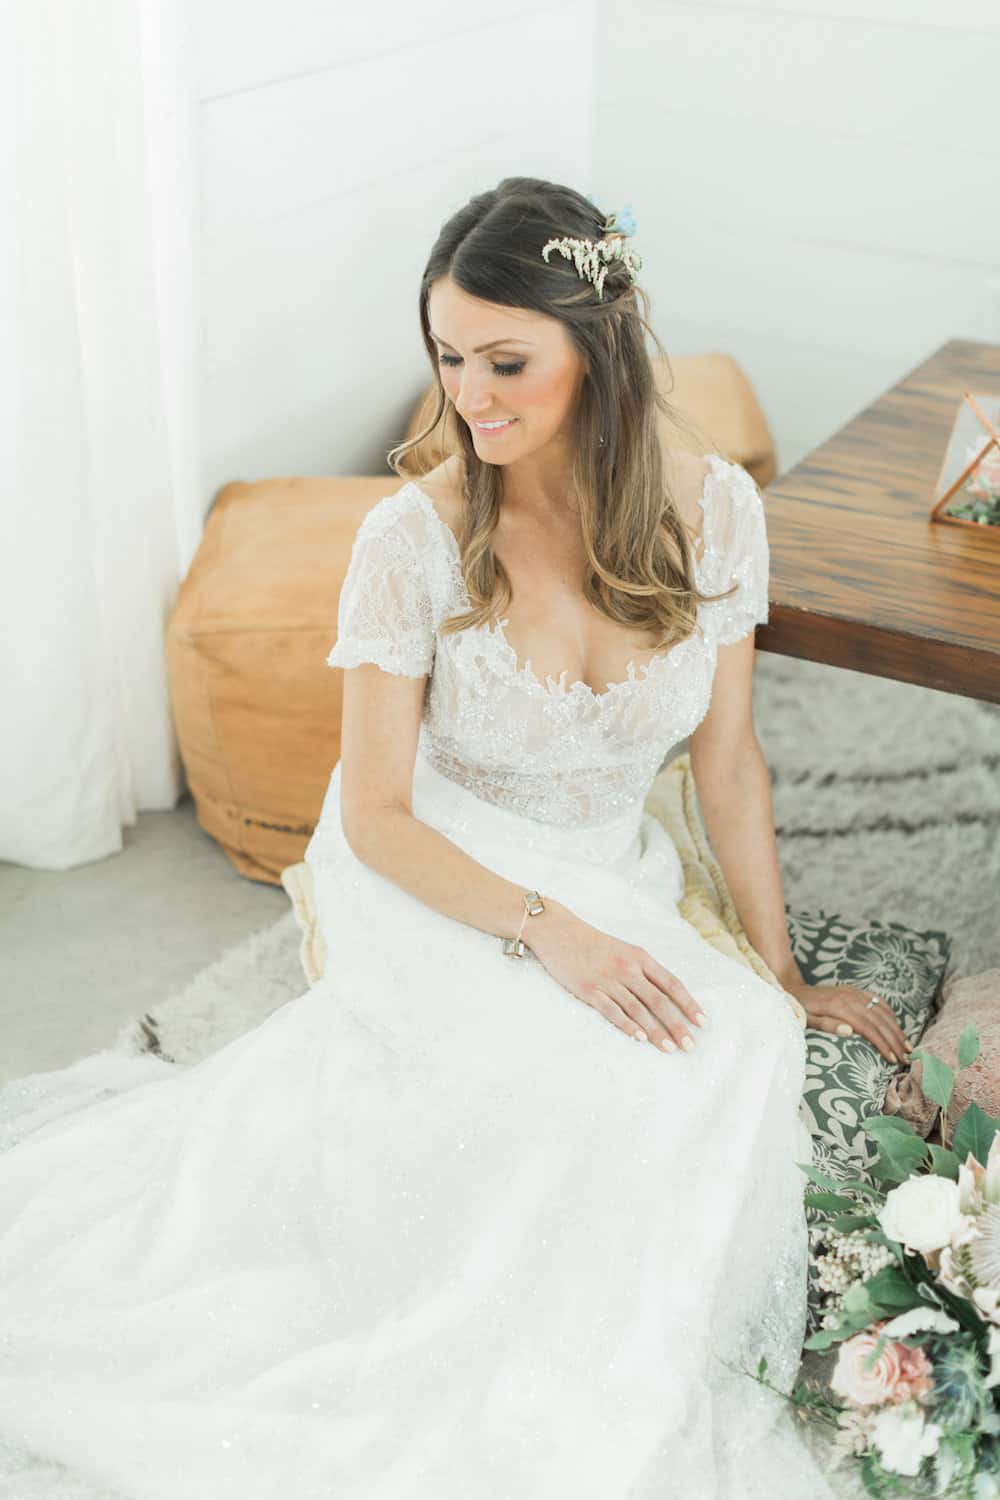 View More: http://jennifermurrayphotography.pass.us/bohoinspiration